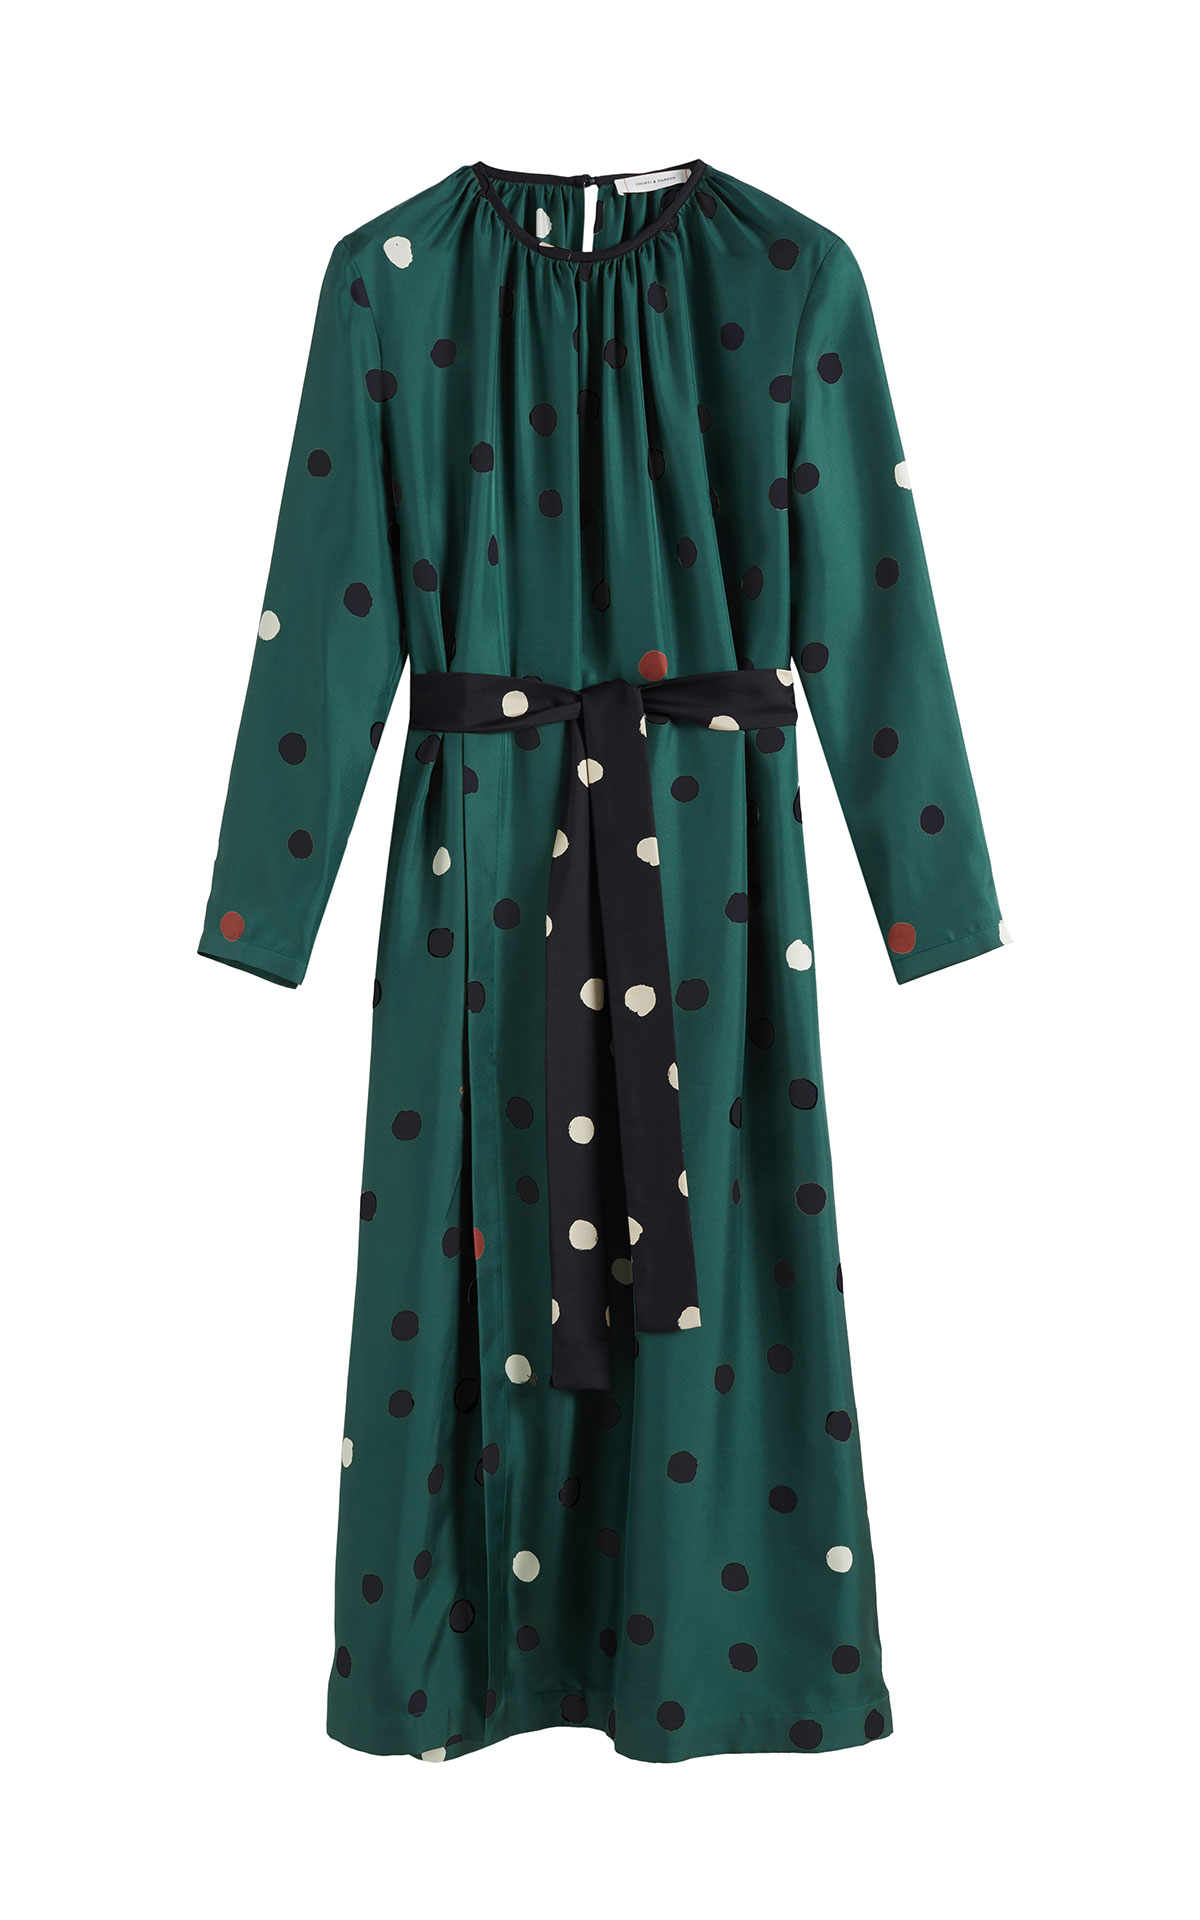 Chinti & Parker Green painted spot dress from Bicester Village